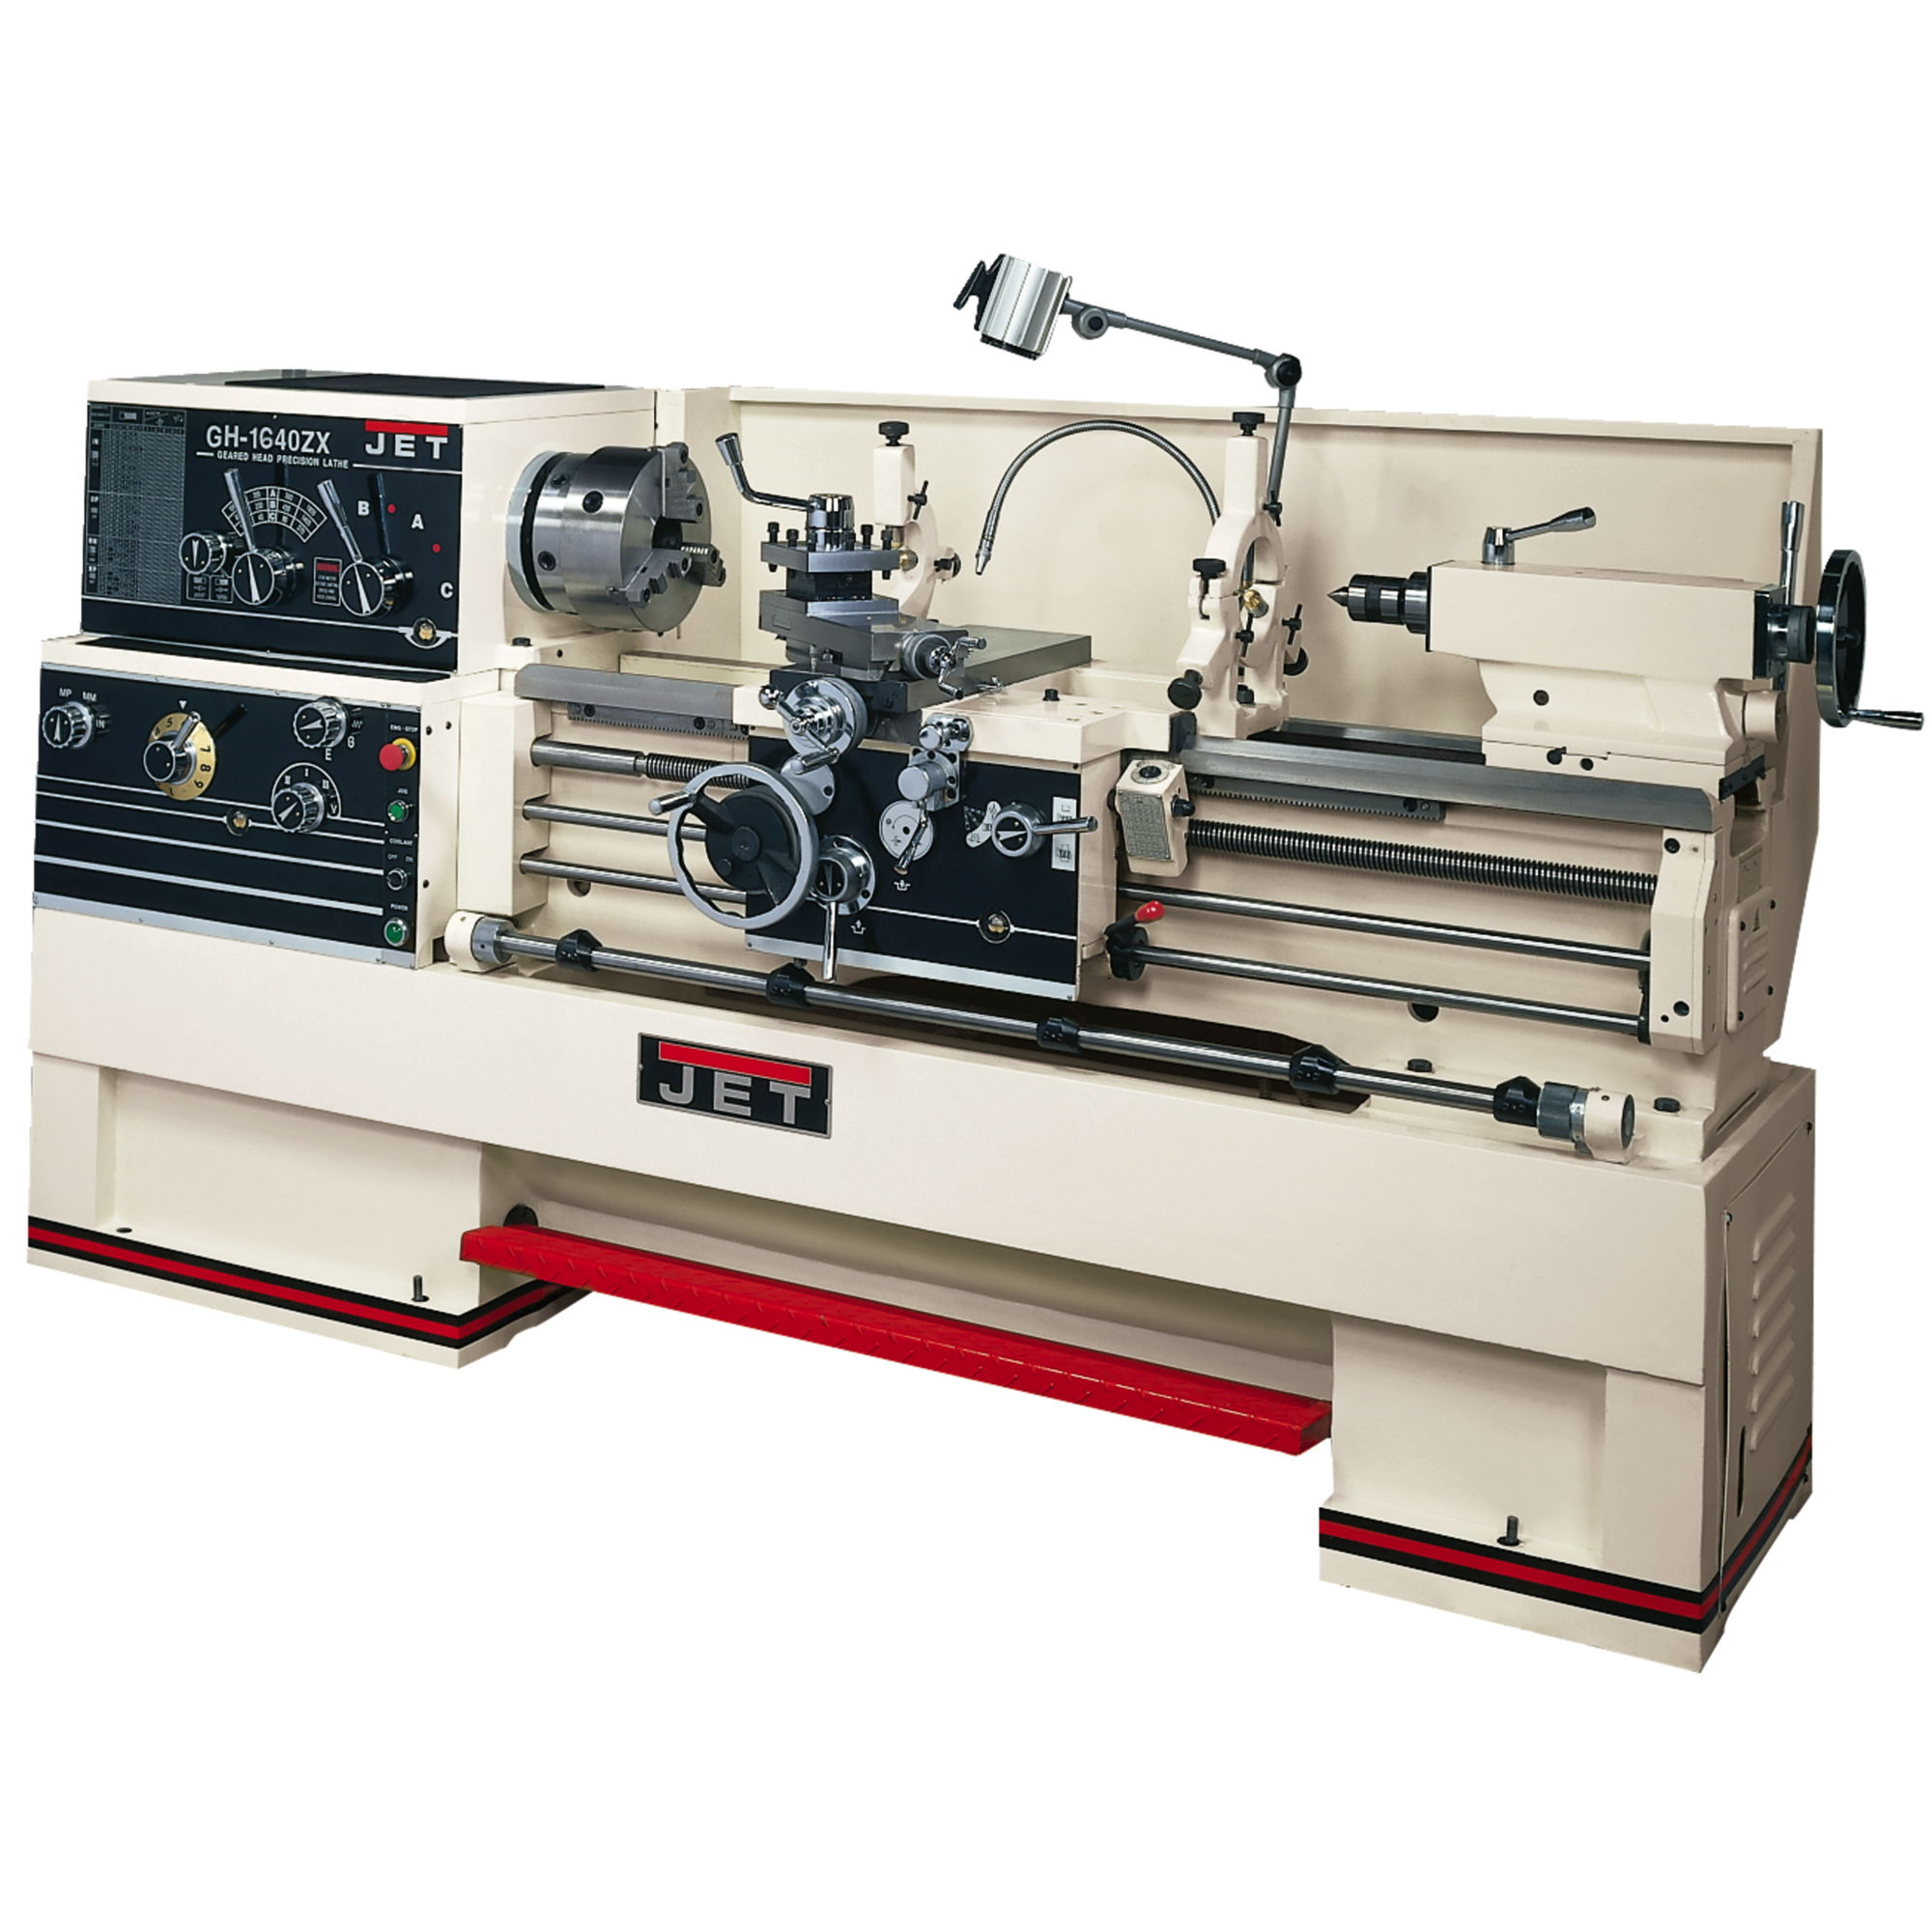 JET GH-1880ZX Large Spindle Bore Lathe With ACU-RITE 200S DRO